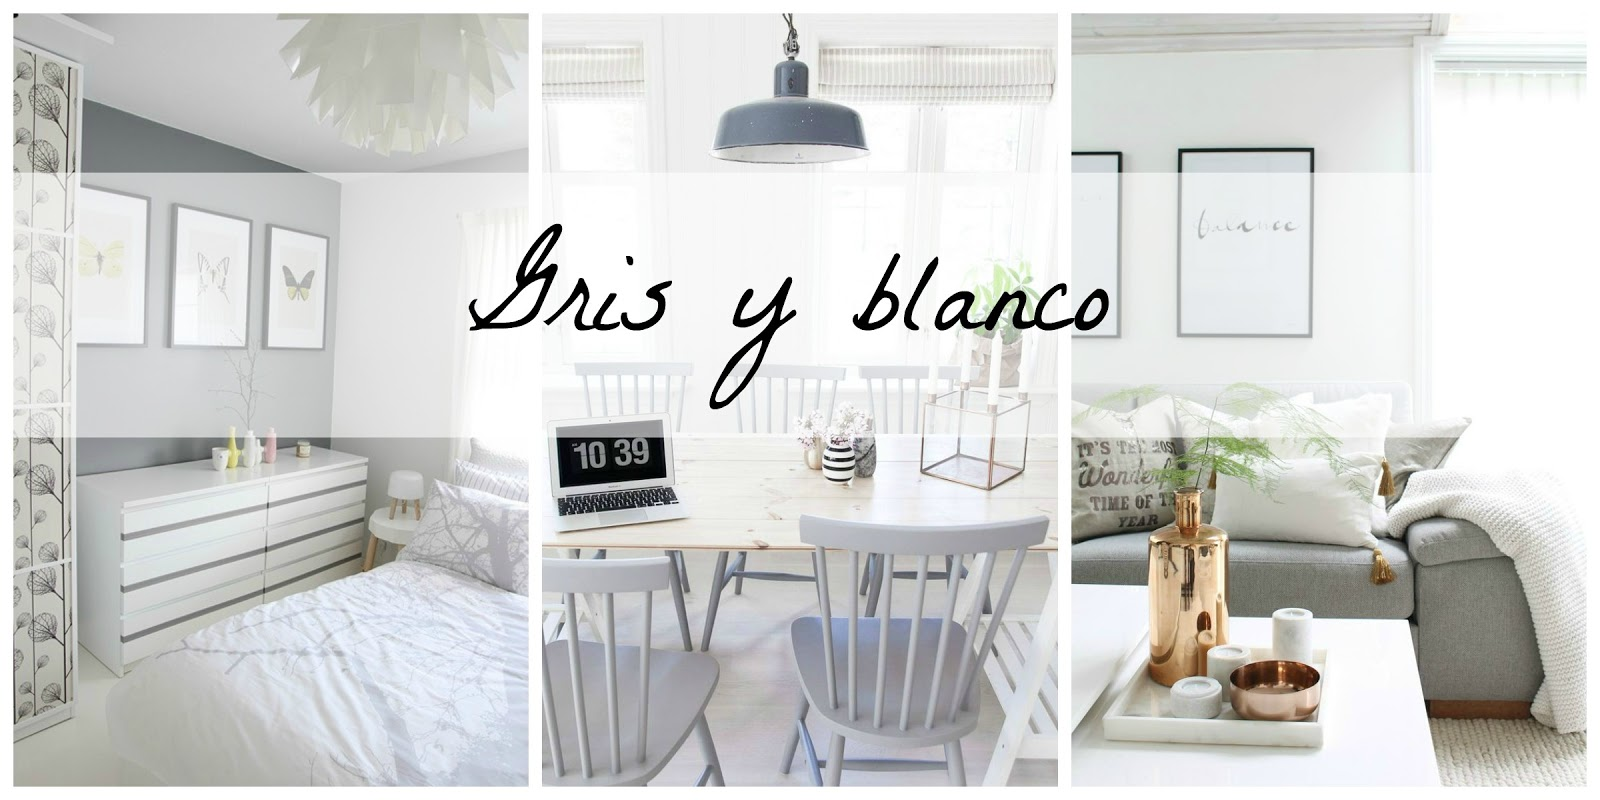 Love color decoraci n en gris y blanco blanco y de madera for Decoracion blanco y gris